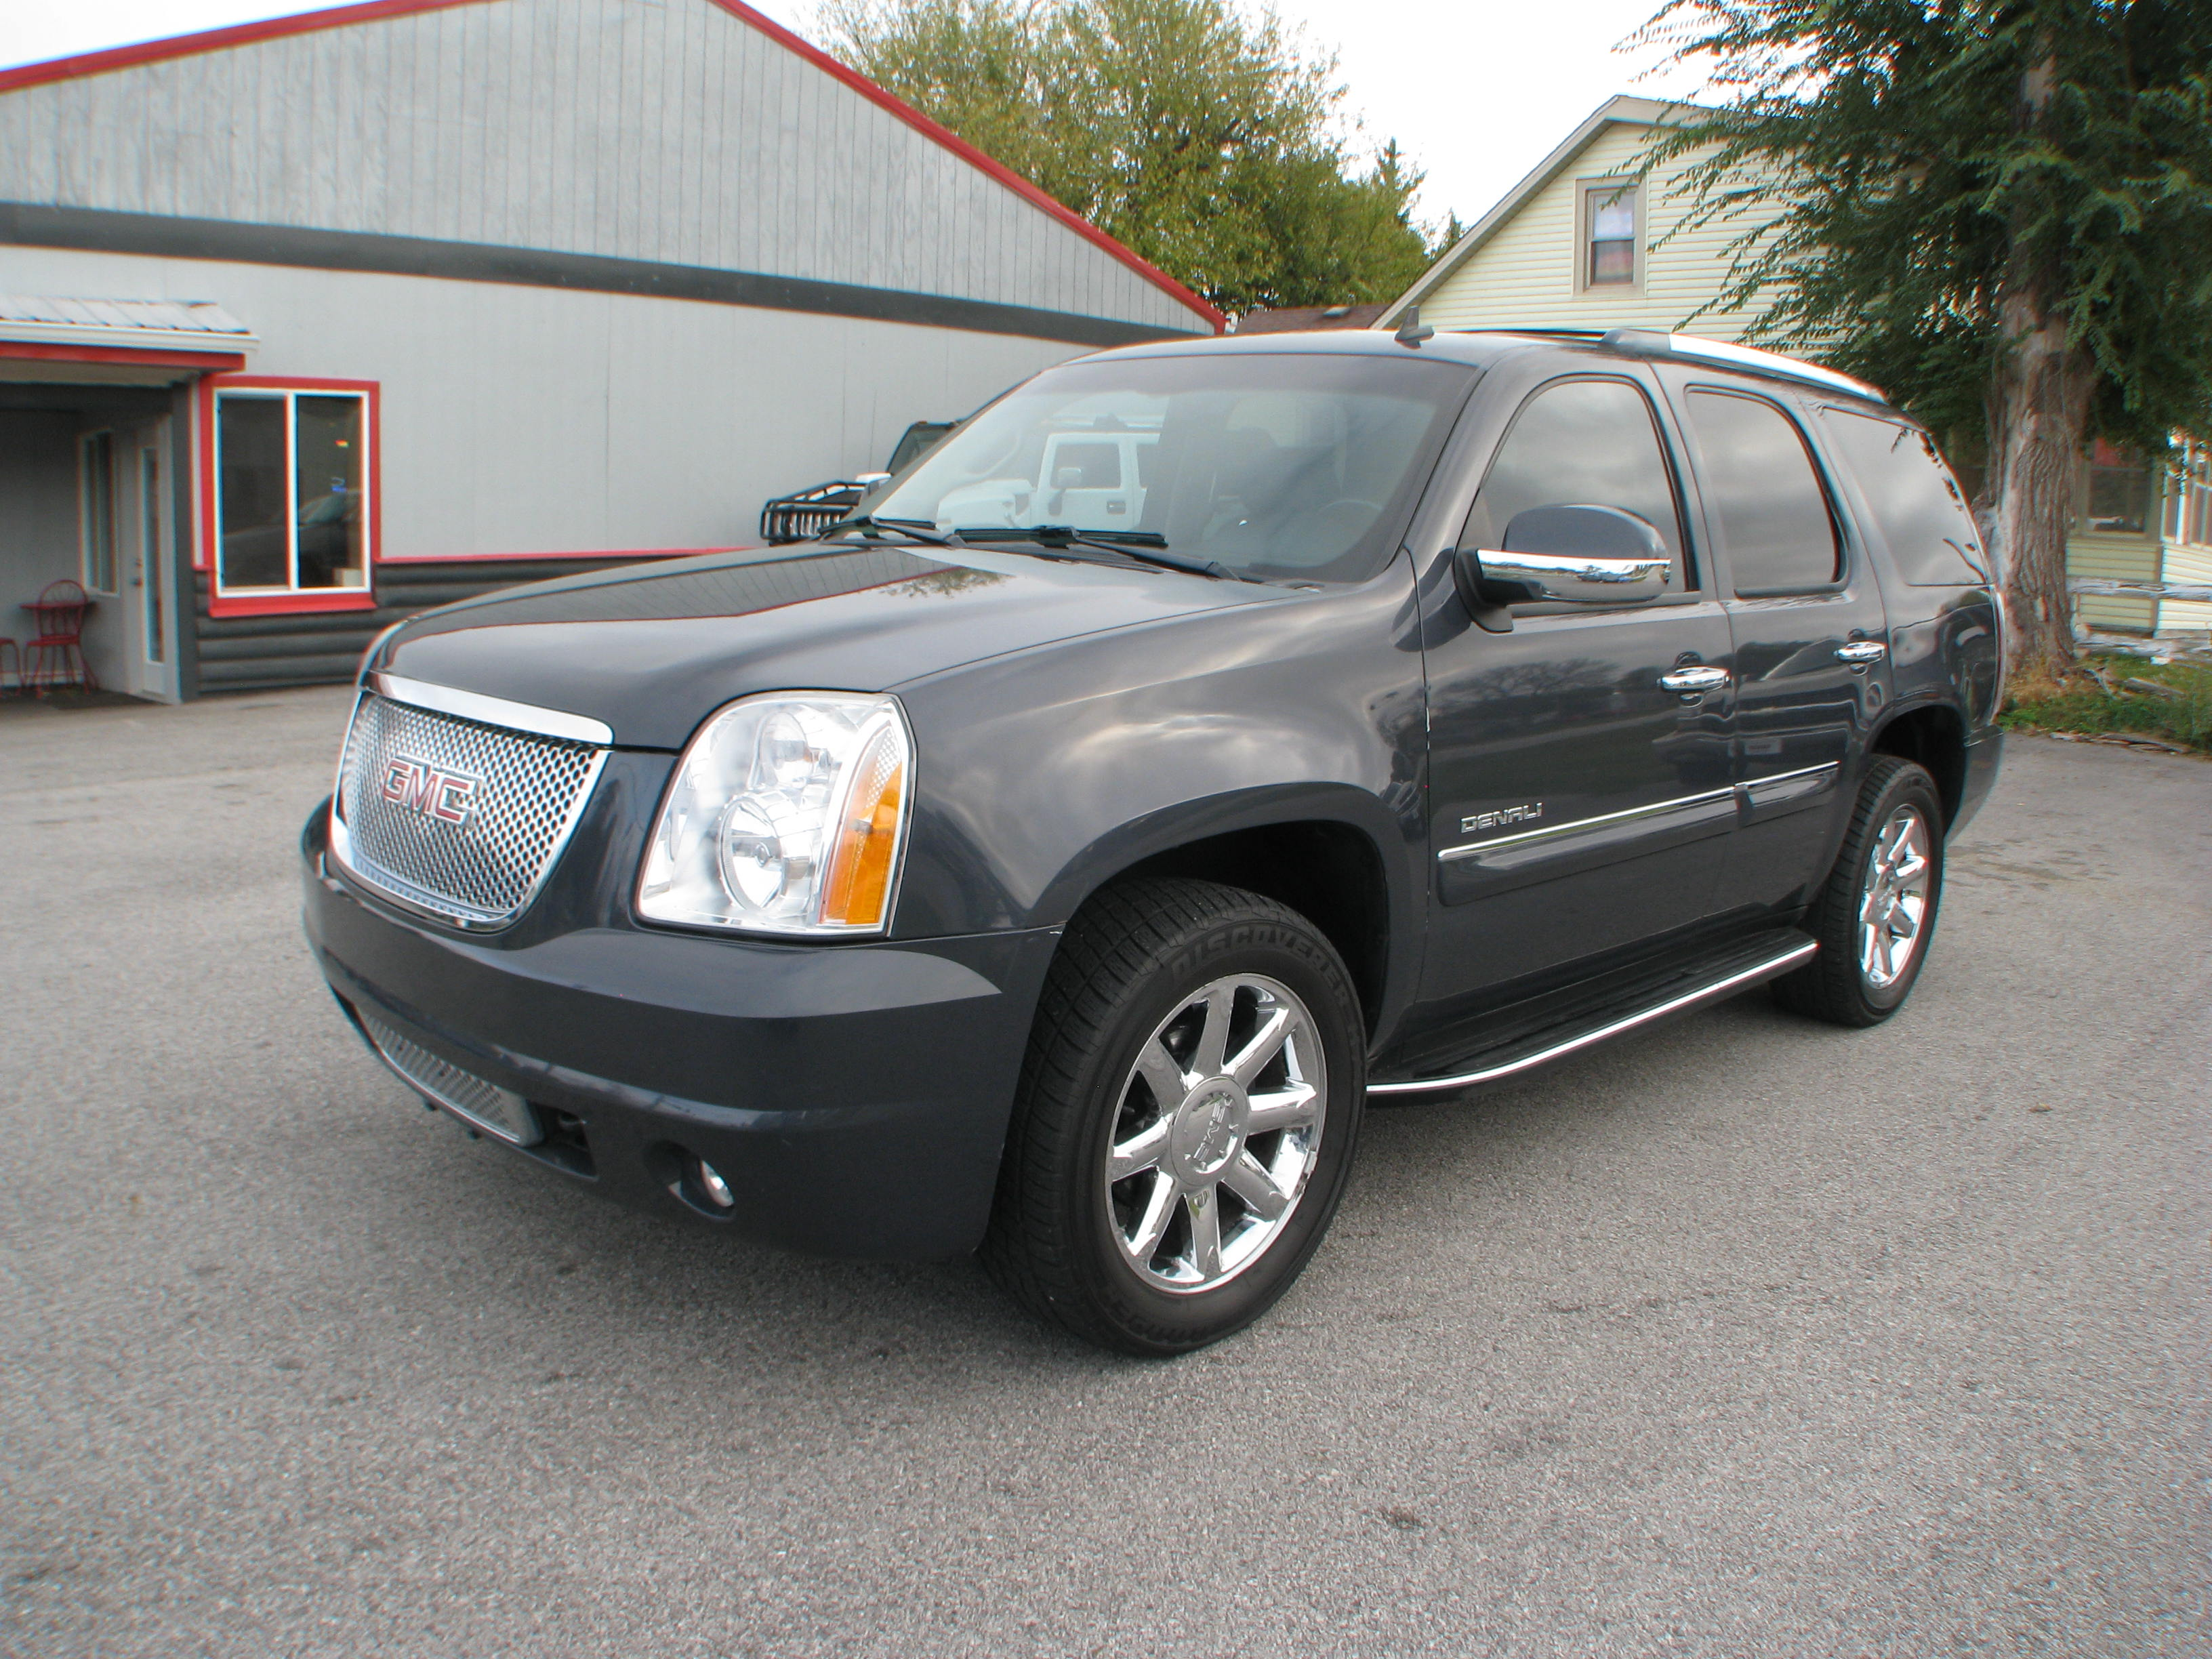 pre owned 2008 gmc yukon denali suv in coal valley cv231121 bastian 39 s auto. Black Bedroom Furniture Sets. Home Design Ideas